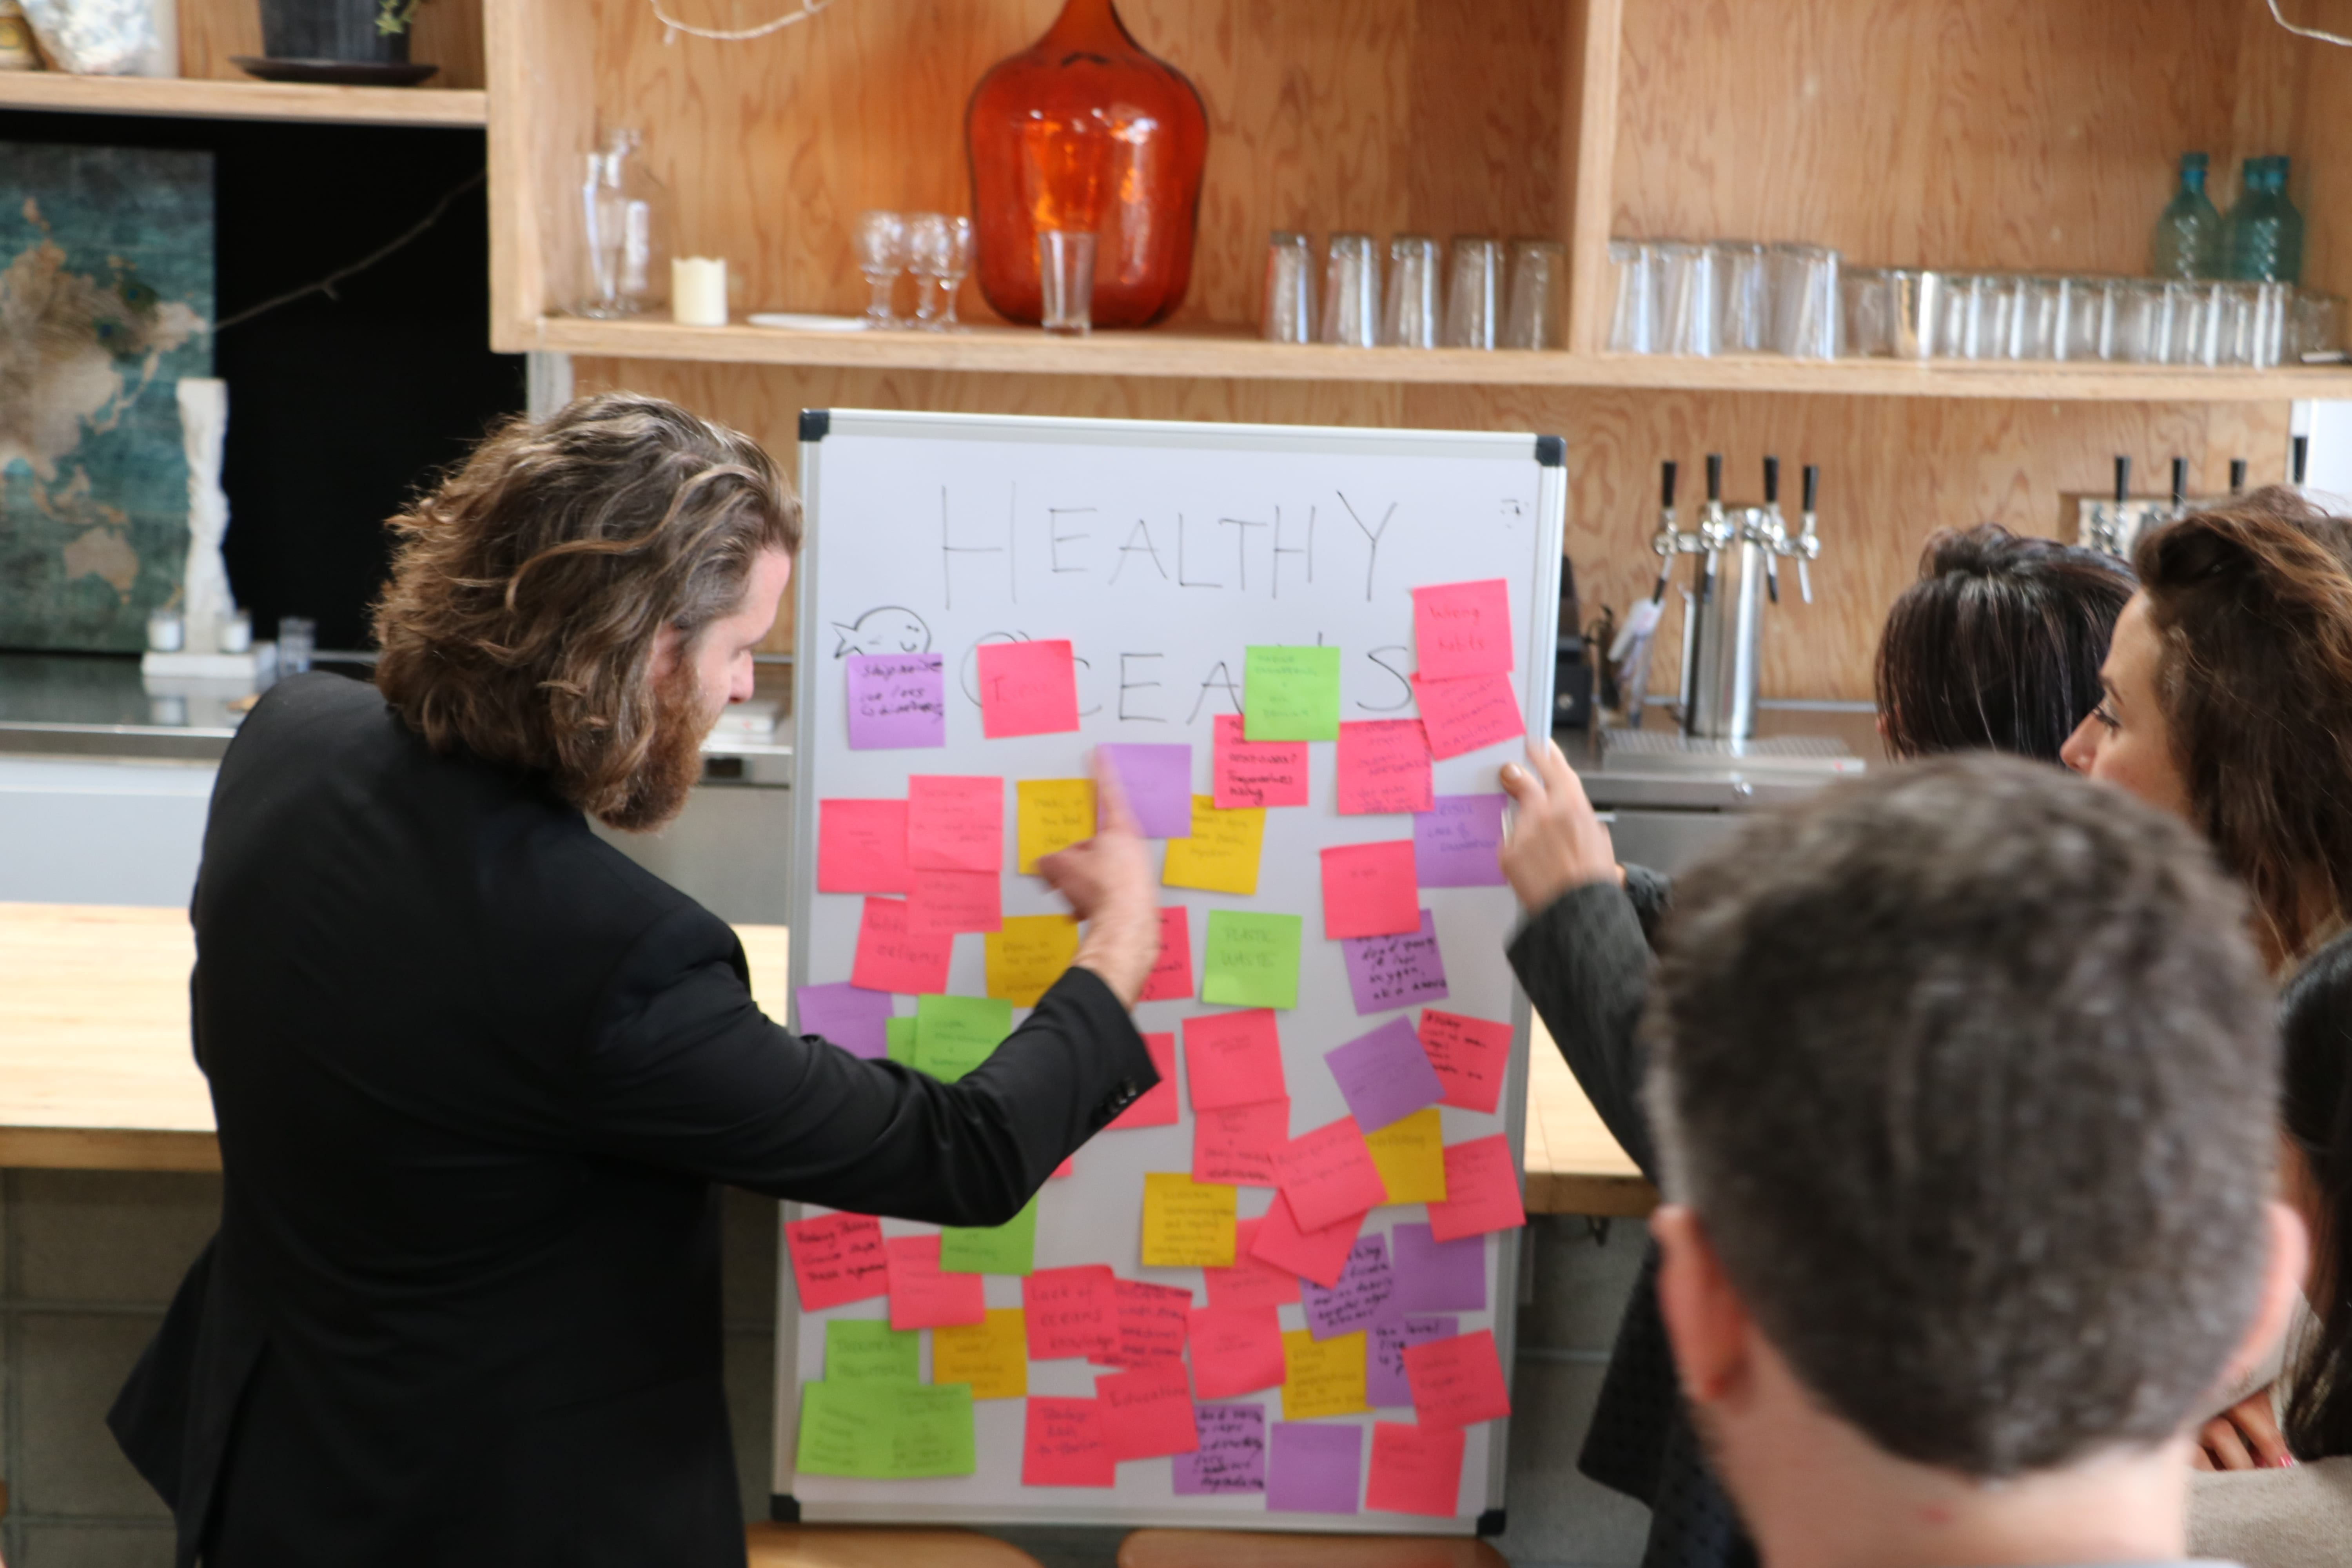 group session with woman looking at sticky notes on a whiteboard